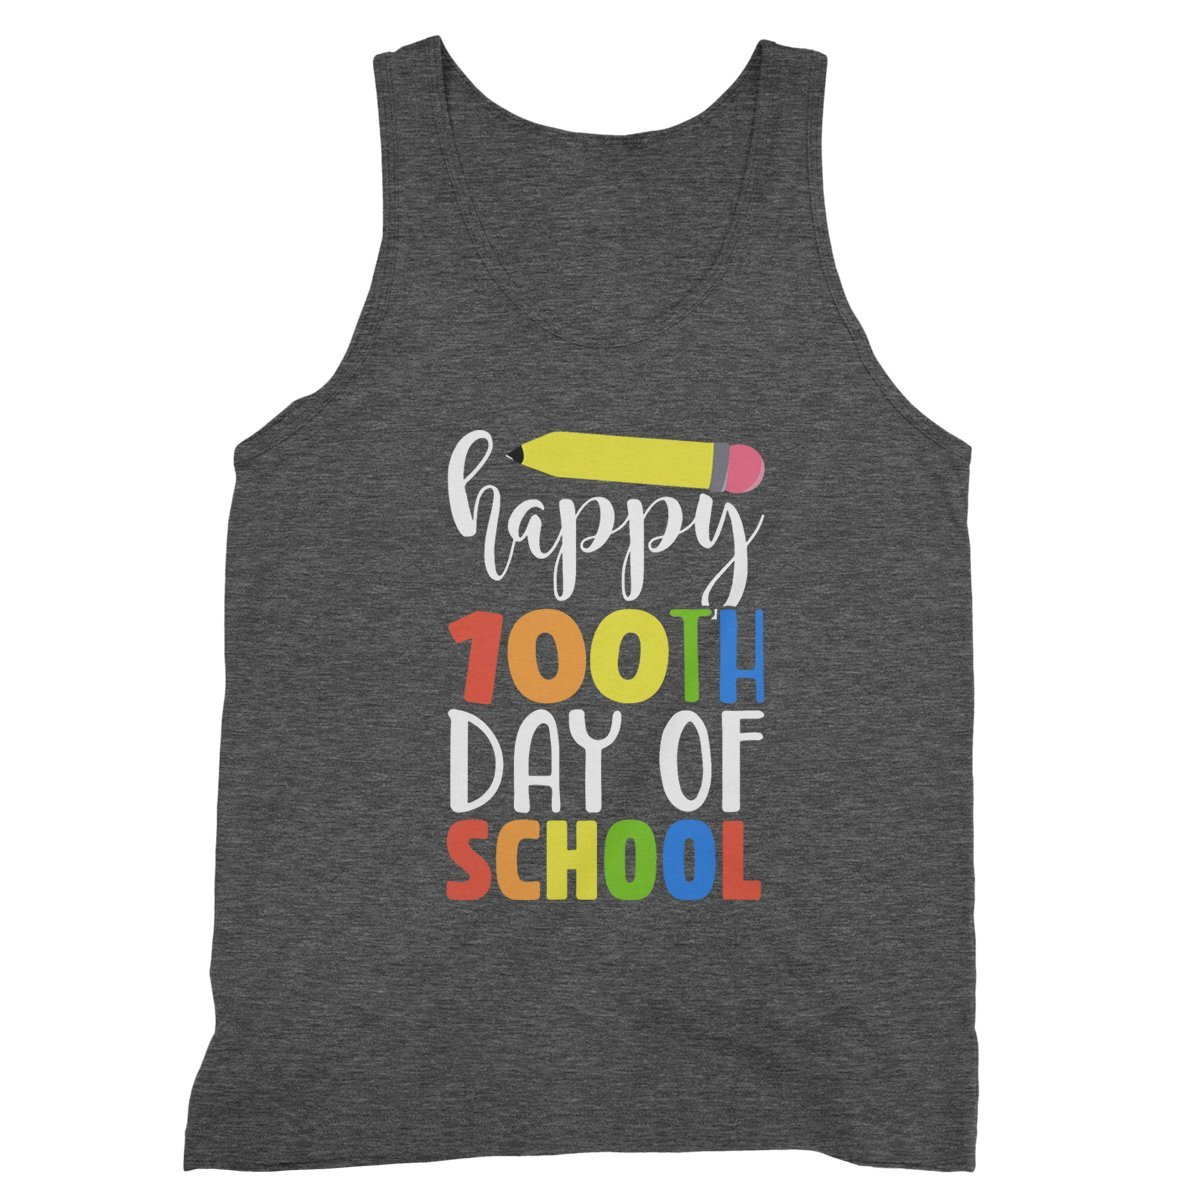 RedStar Mart Happy 100th Day of School for Teacher Tanktop